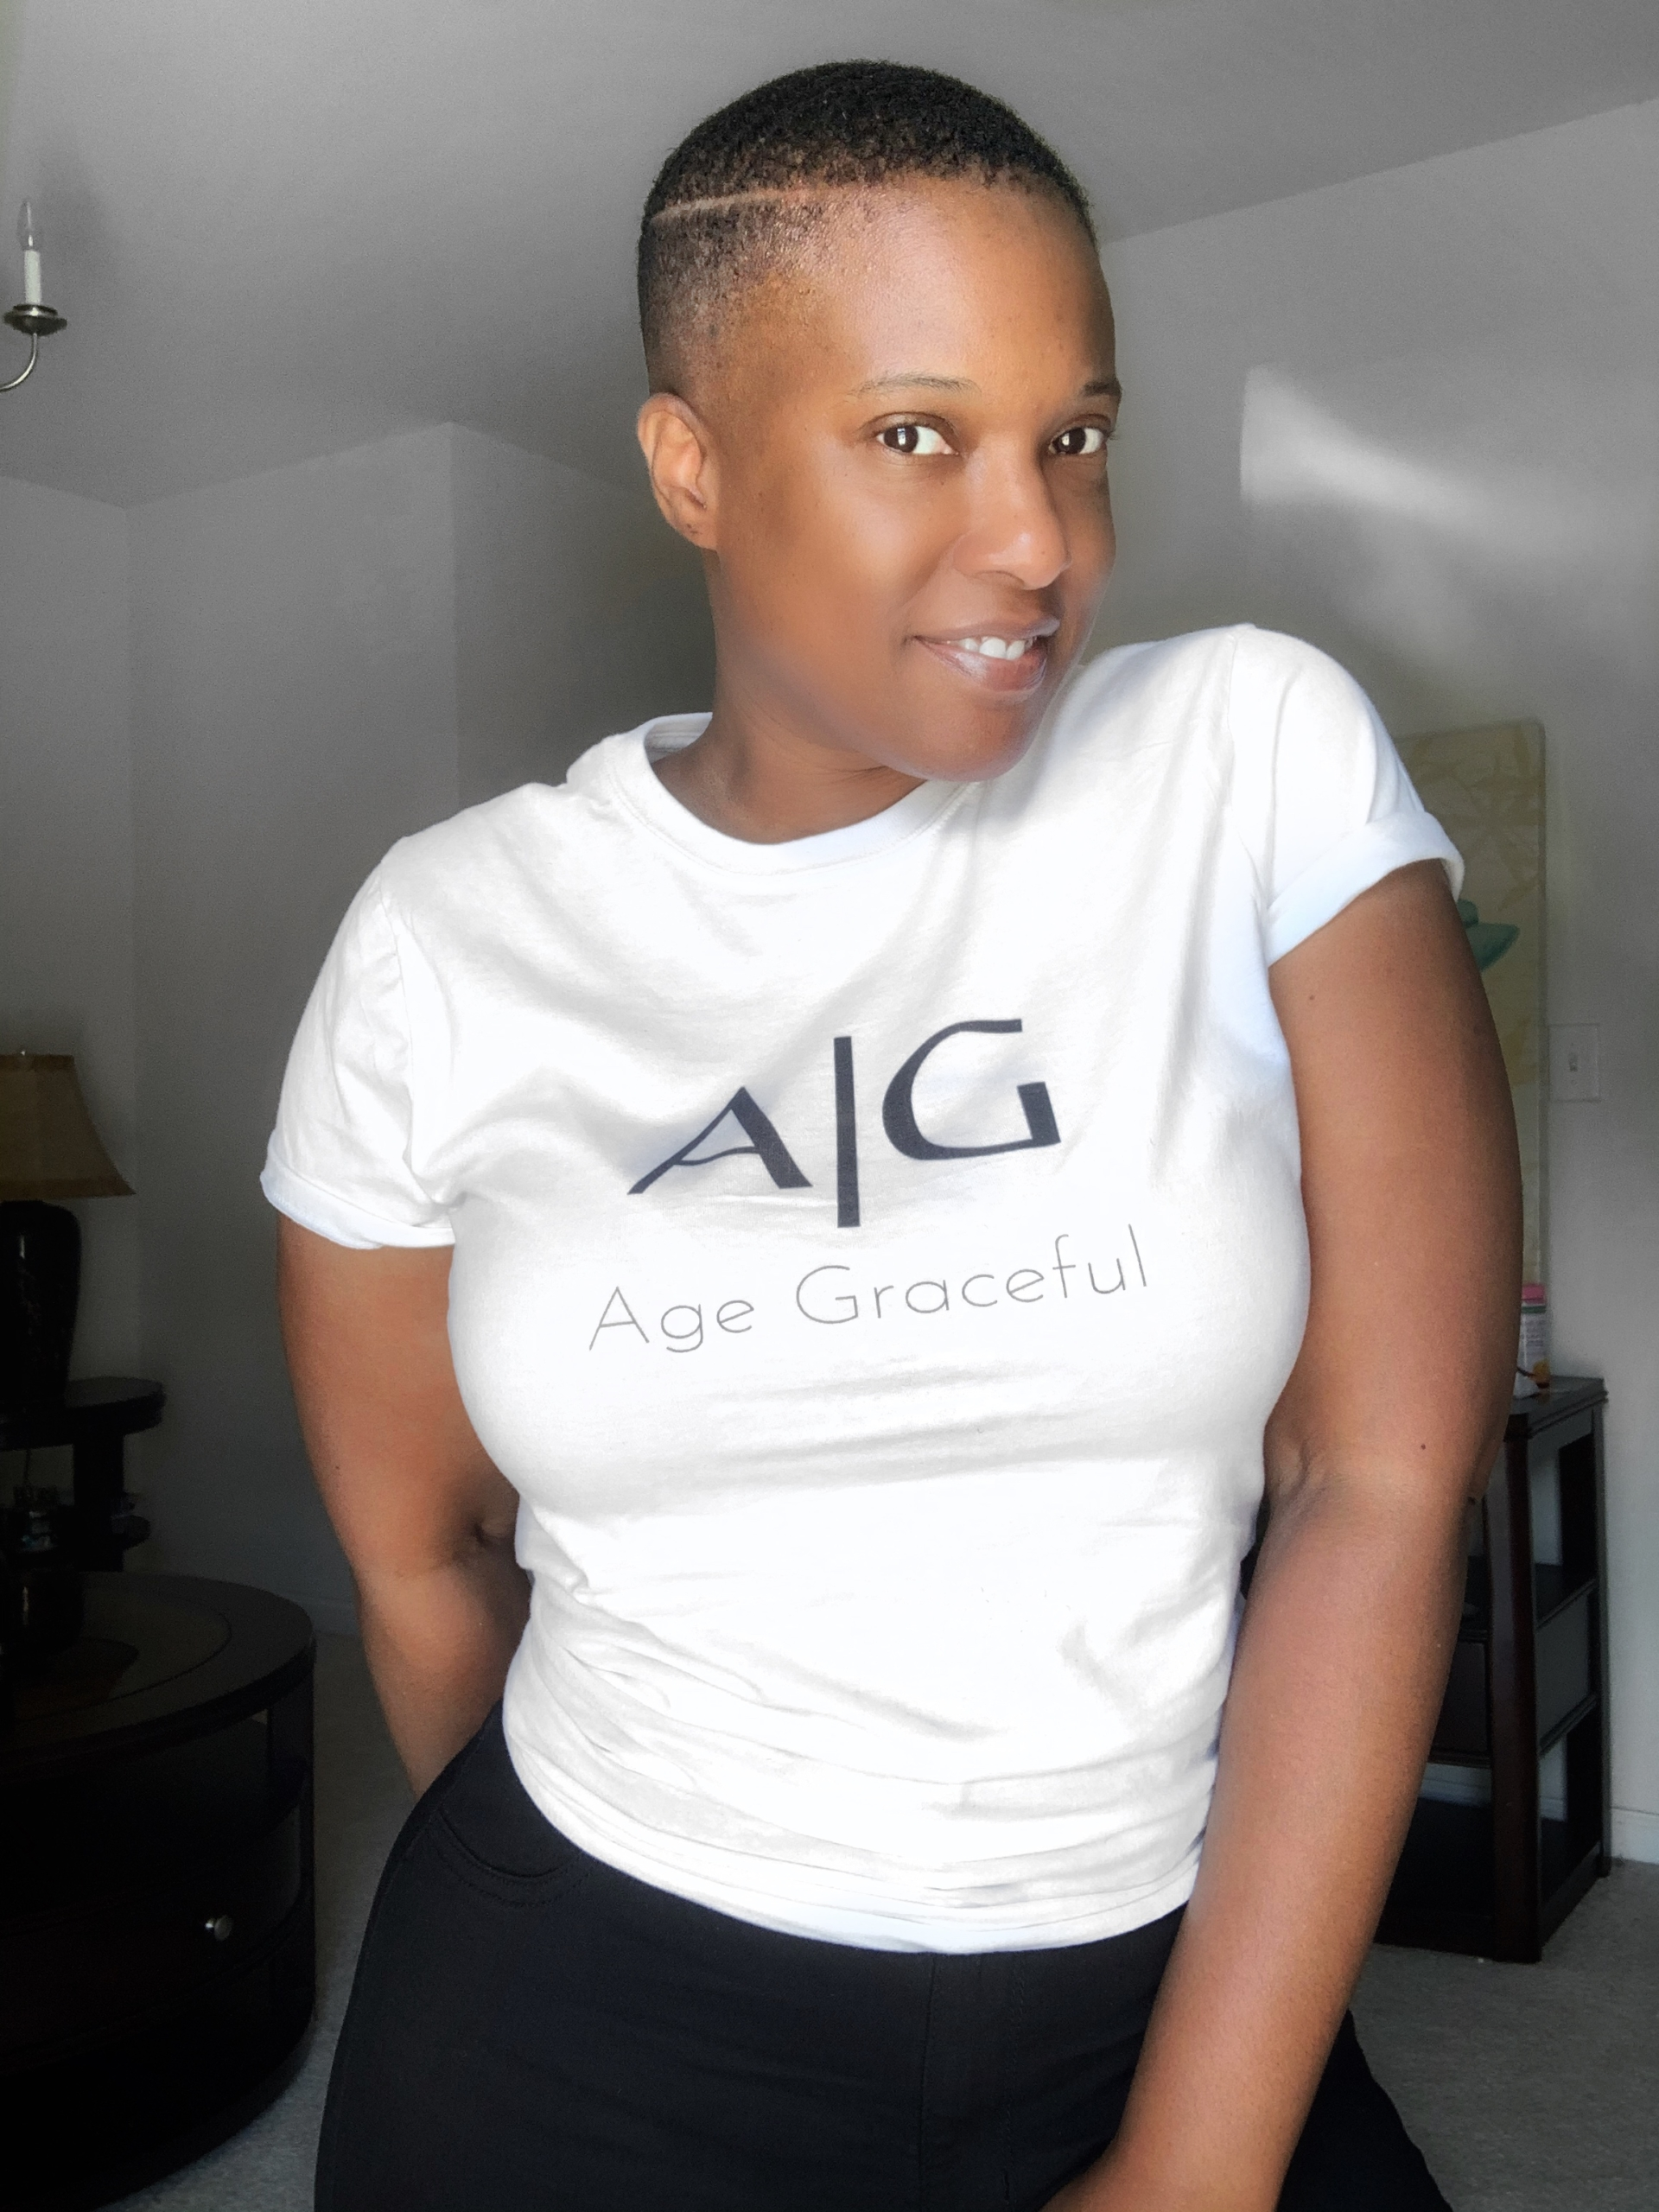 Age Graceful